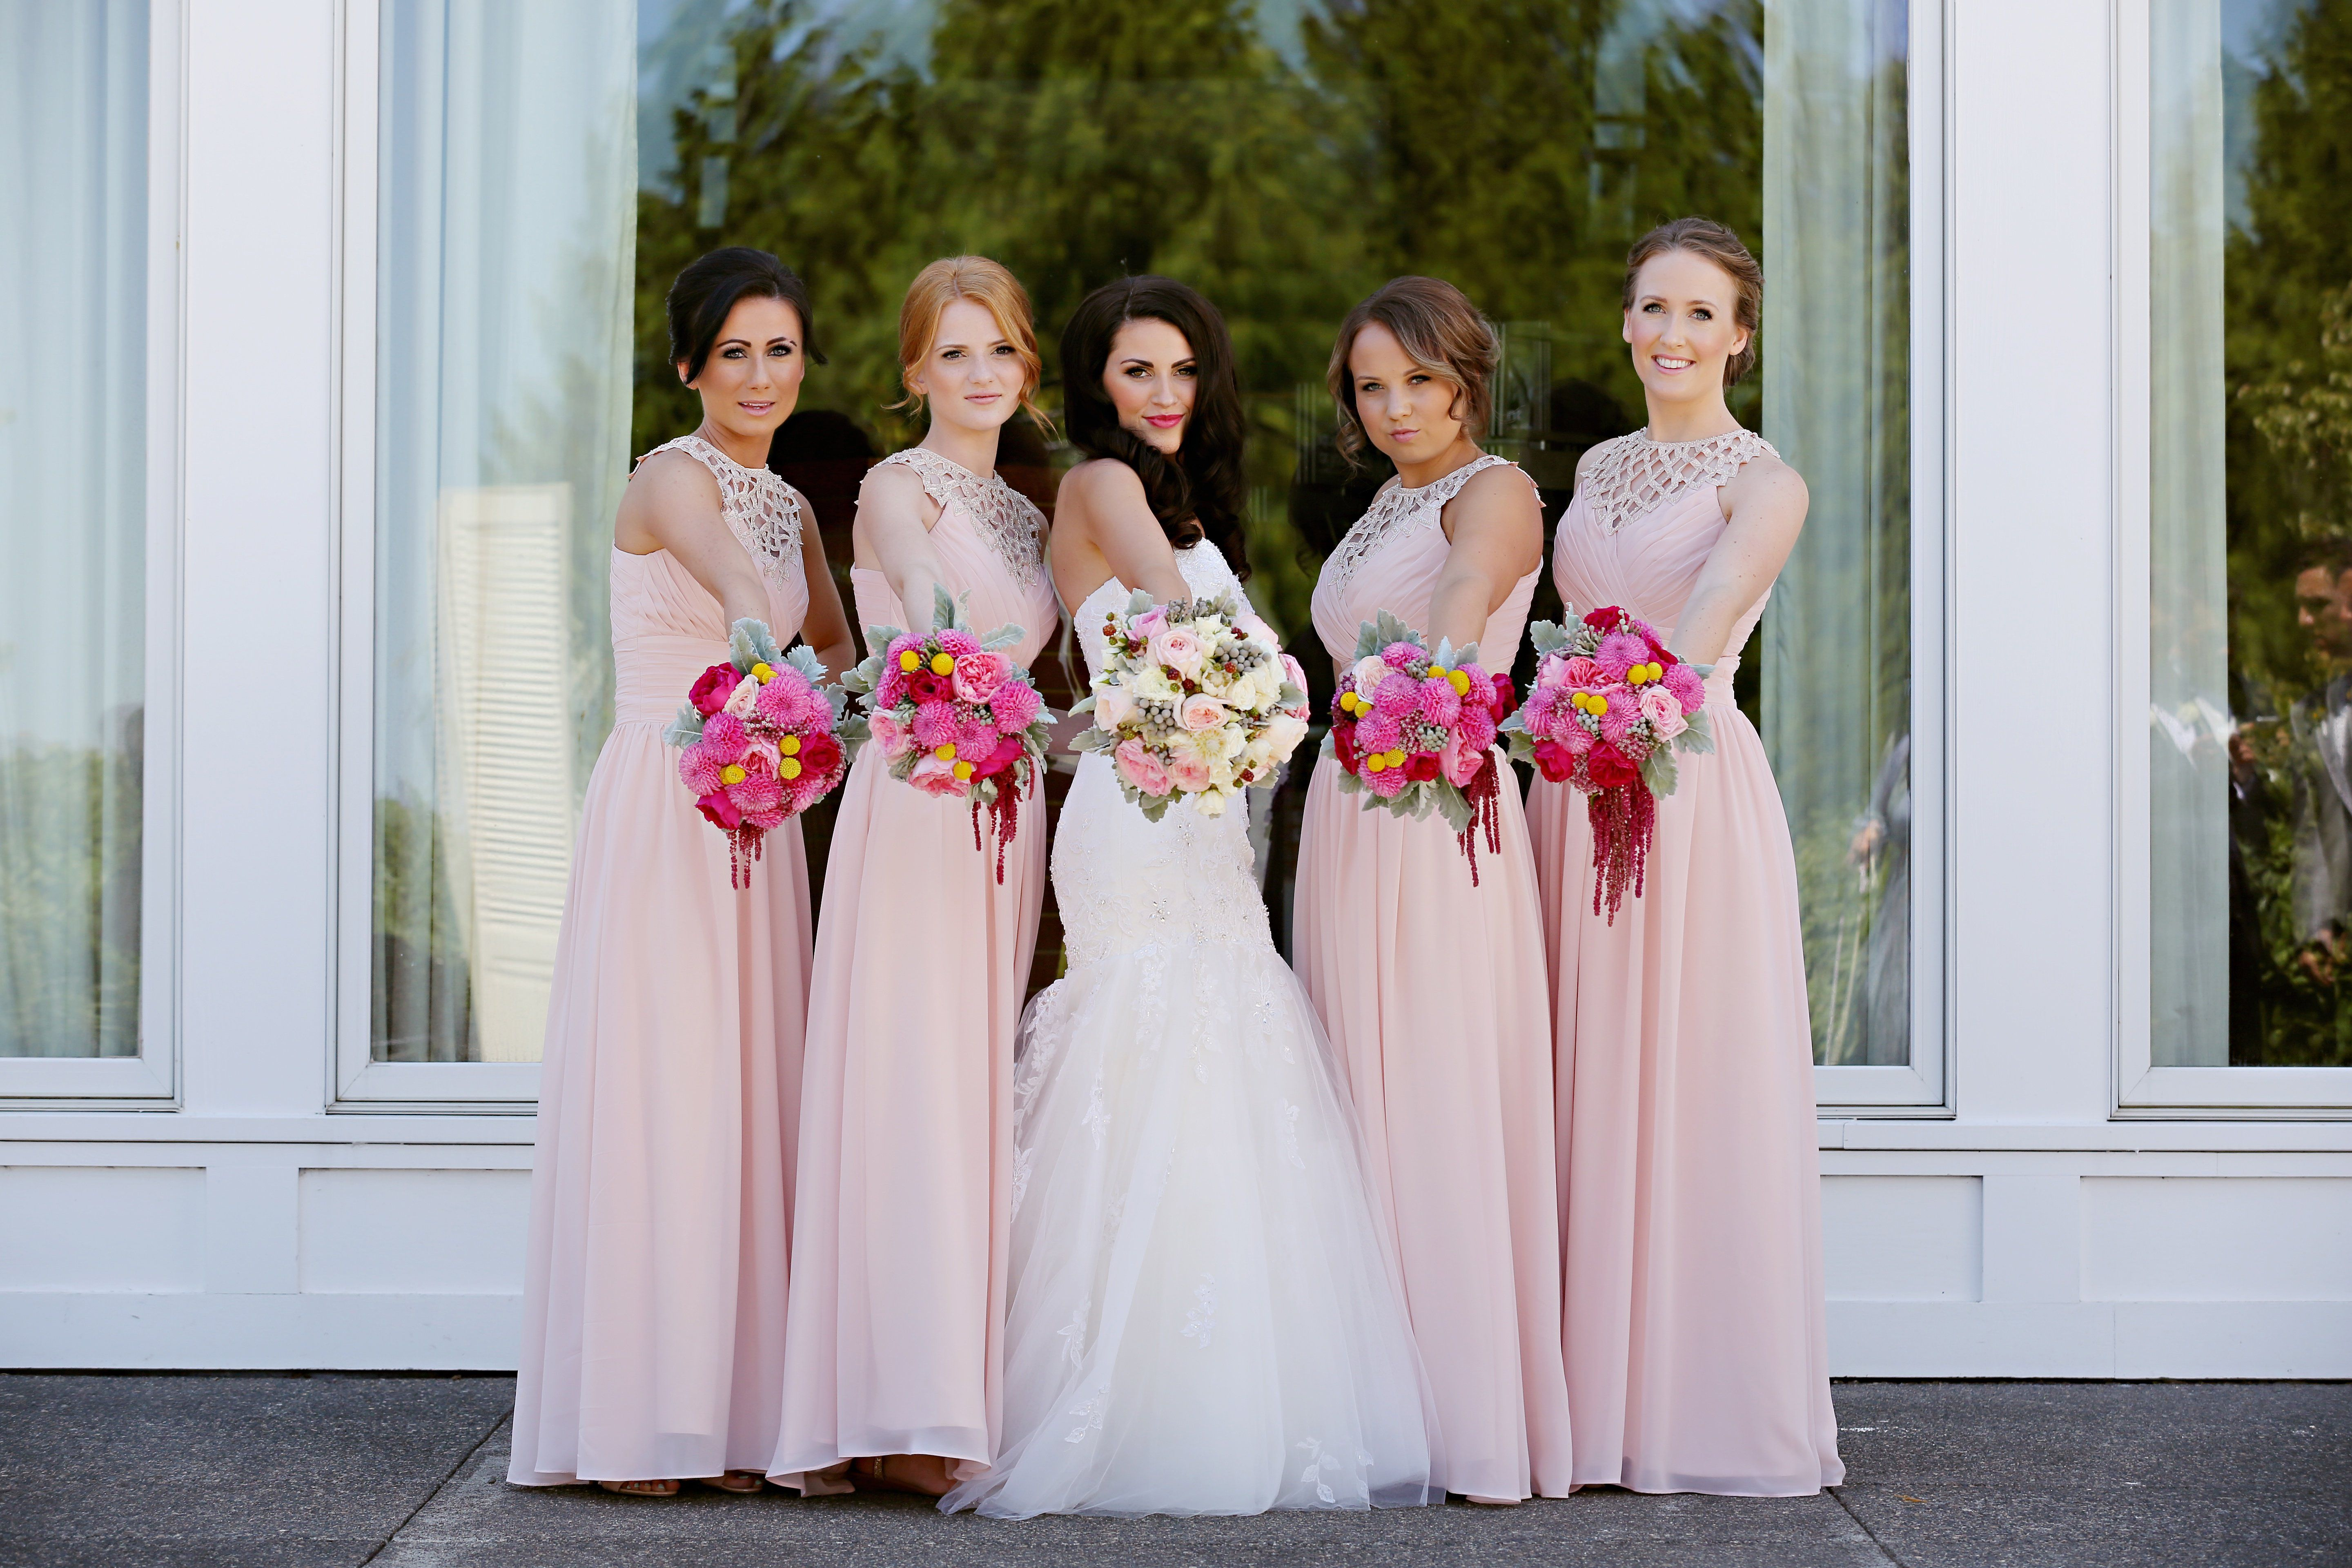 Fabulous pink bridesmaid dresses special day pinterest long blush pink long chiffon a line formal cheap wedding party bridesmaid dresses ombrellifo Gallery